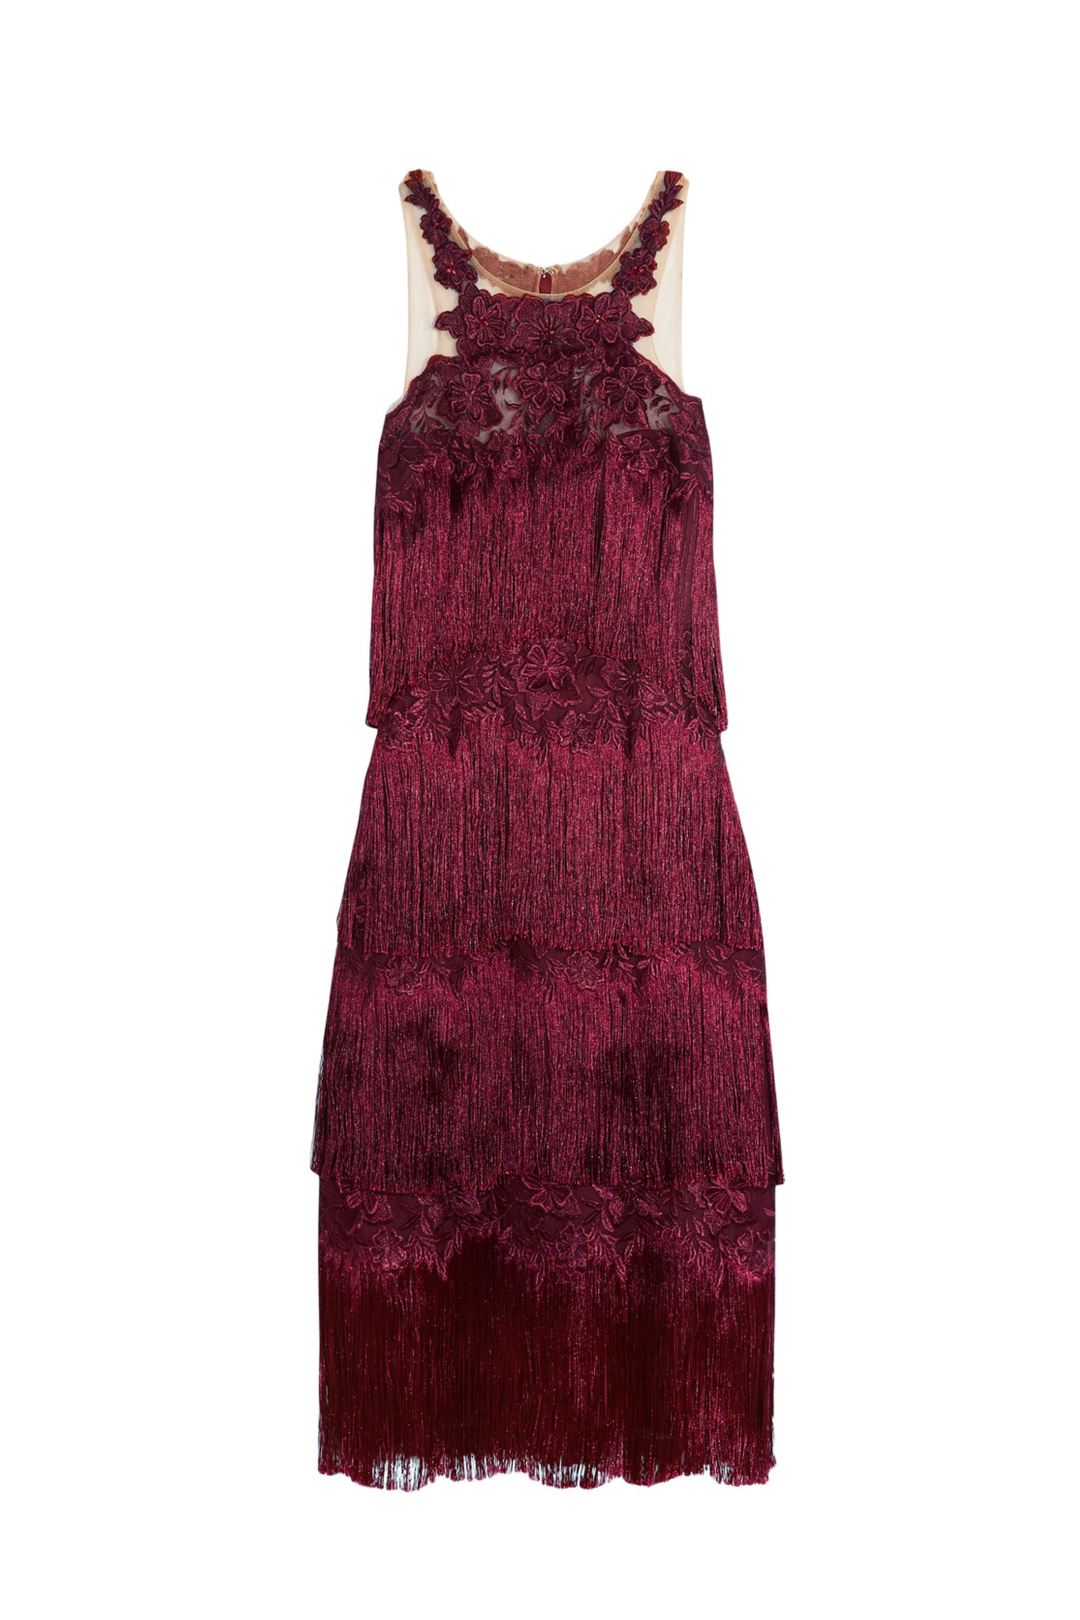 Fringed Embroidered Burgundy Dress